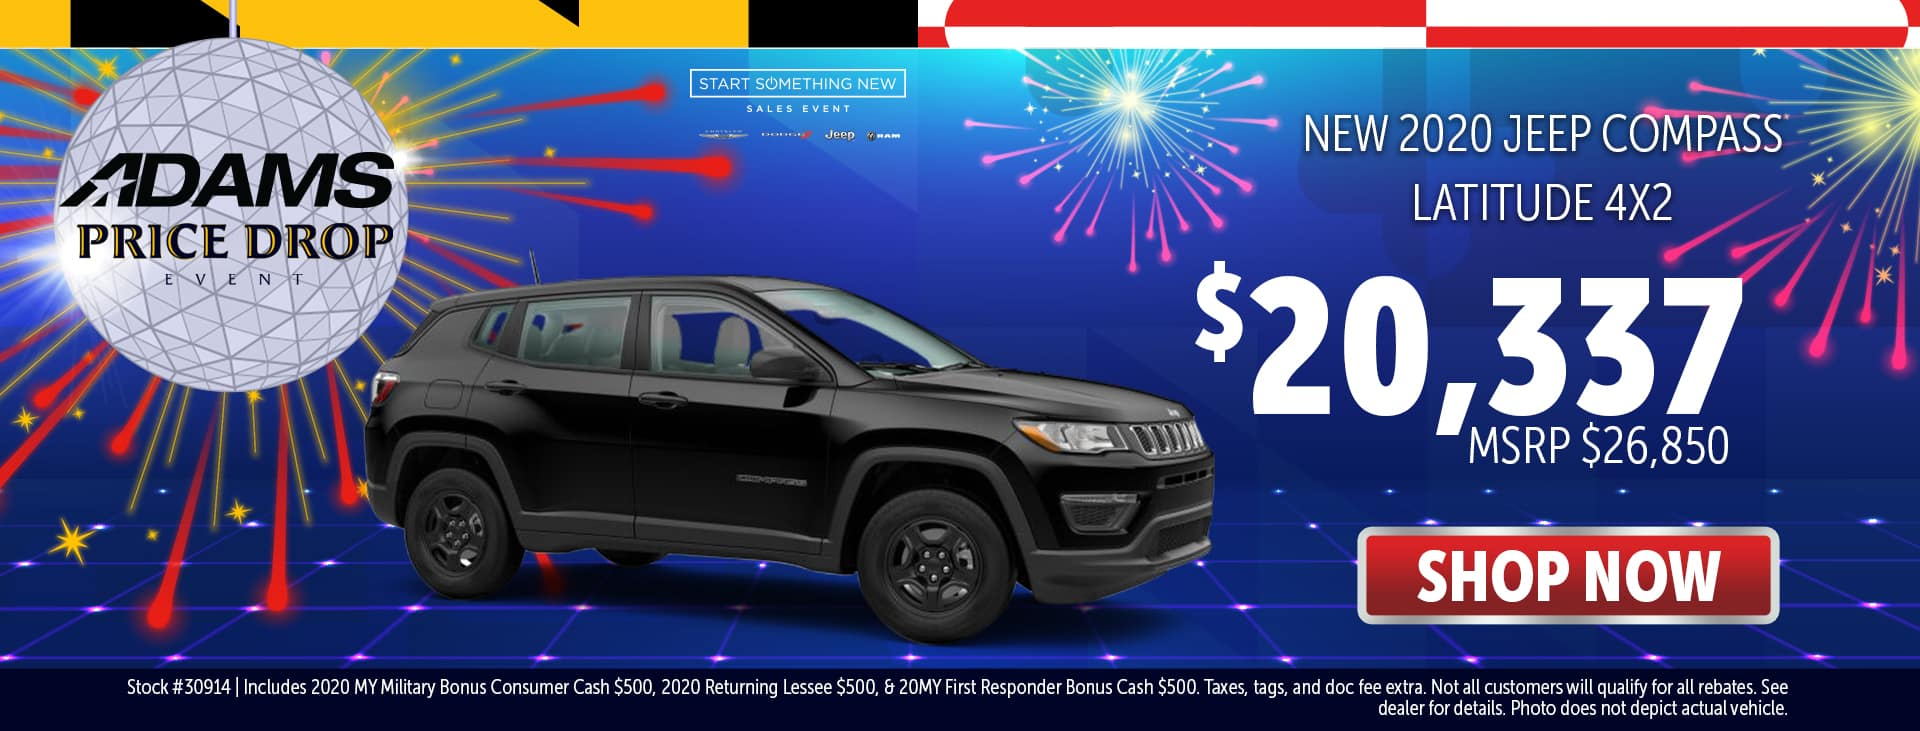 2020 Jeep Compass for $23,337!